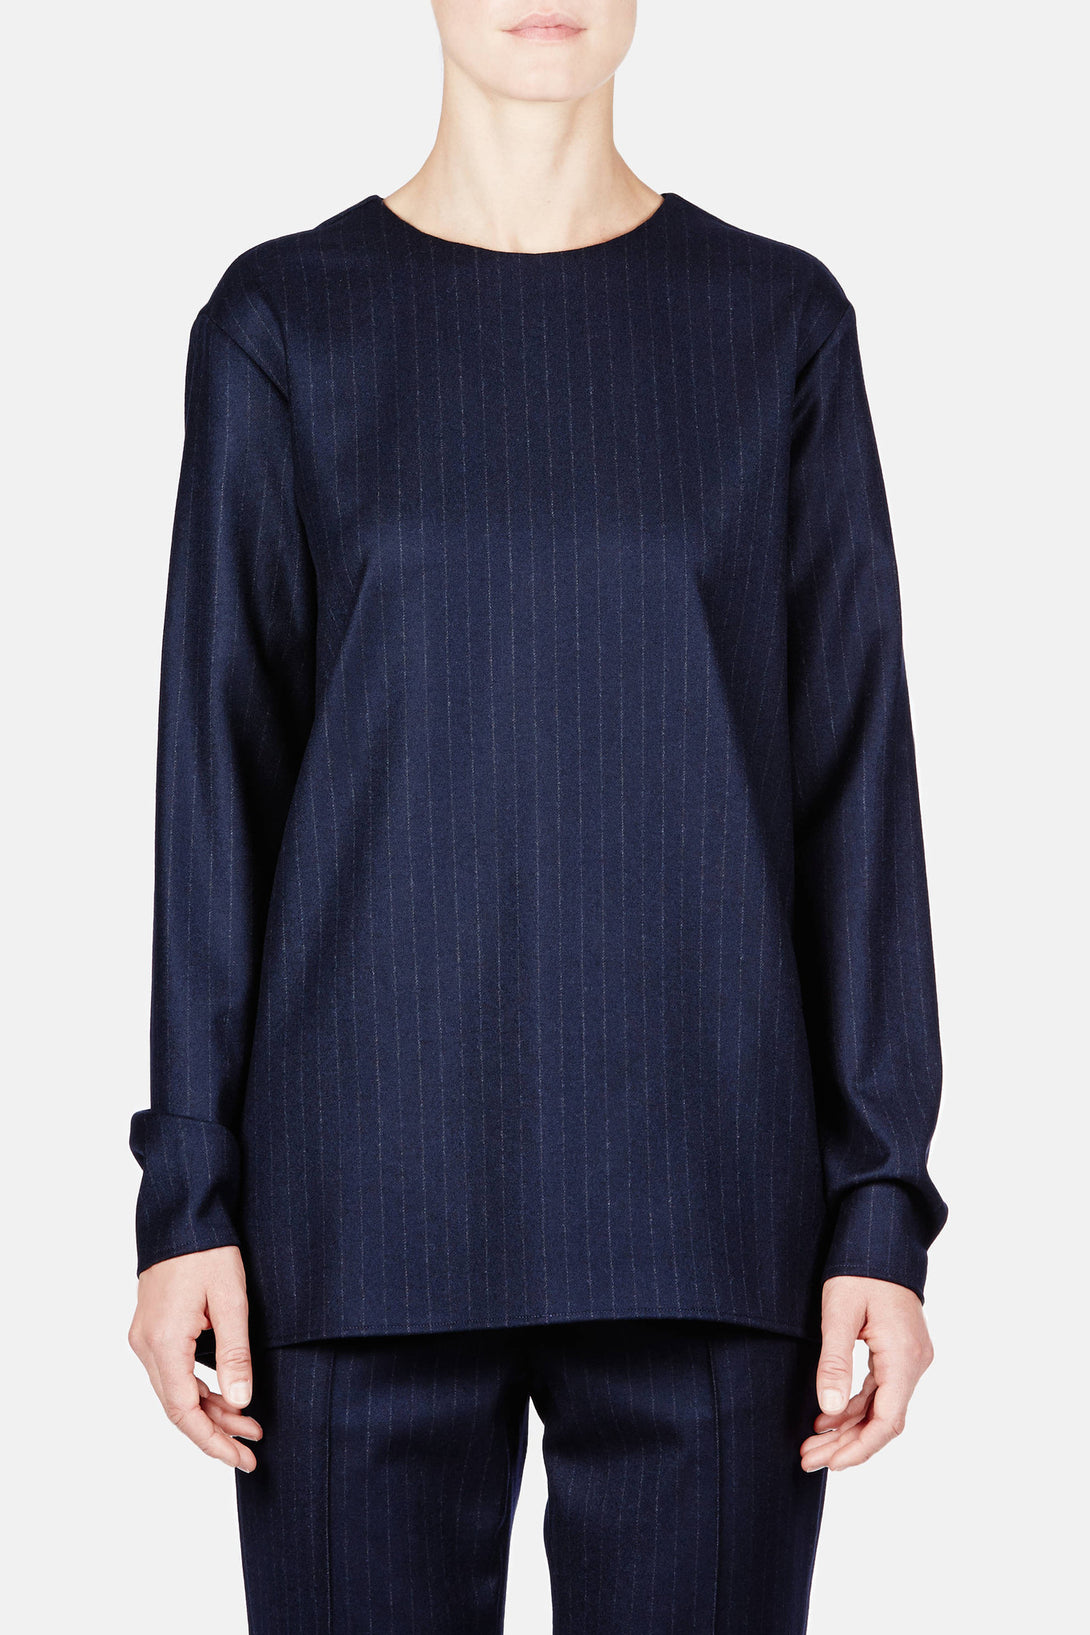 Shirt 07 Long Sleeve Button Blouse - Navy Pinstripe